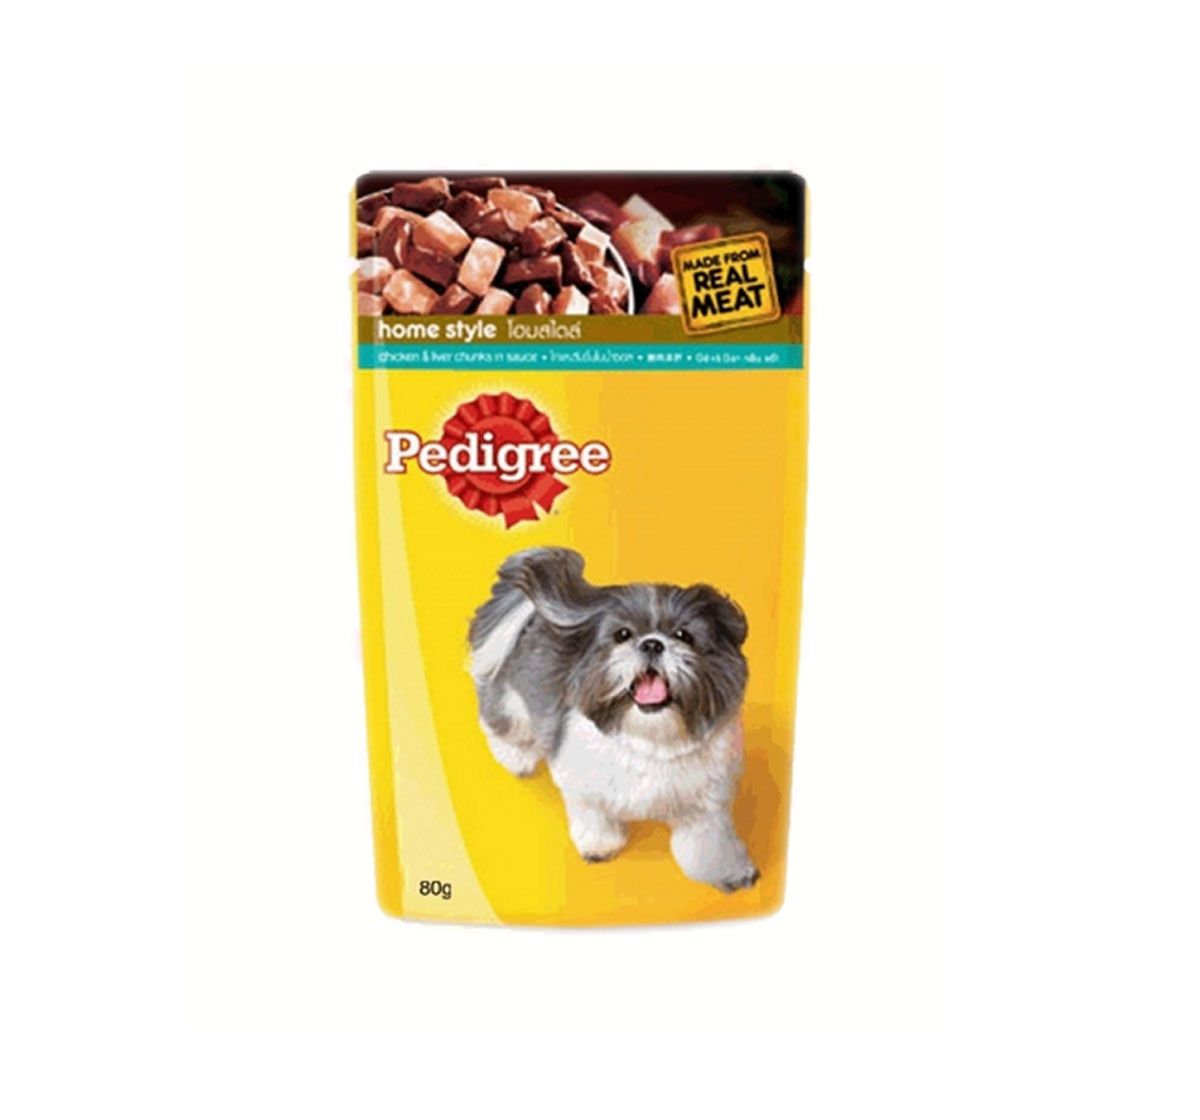 Science Diet Dog Food : 2019 Review, Recalls & Coupons